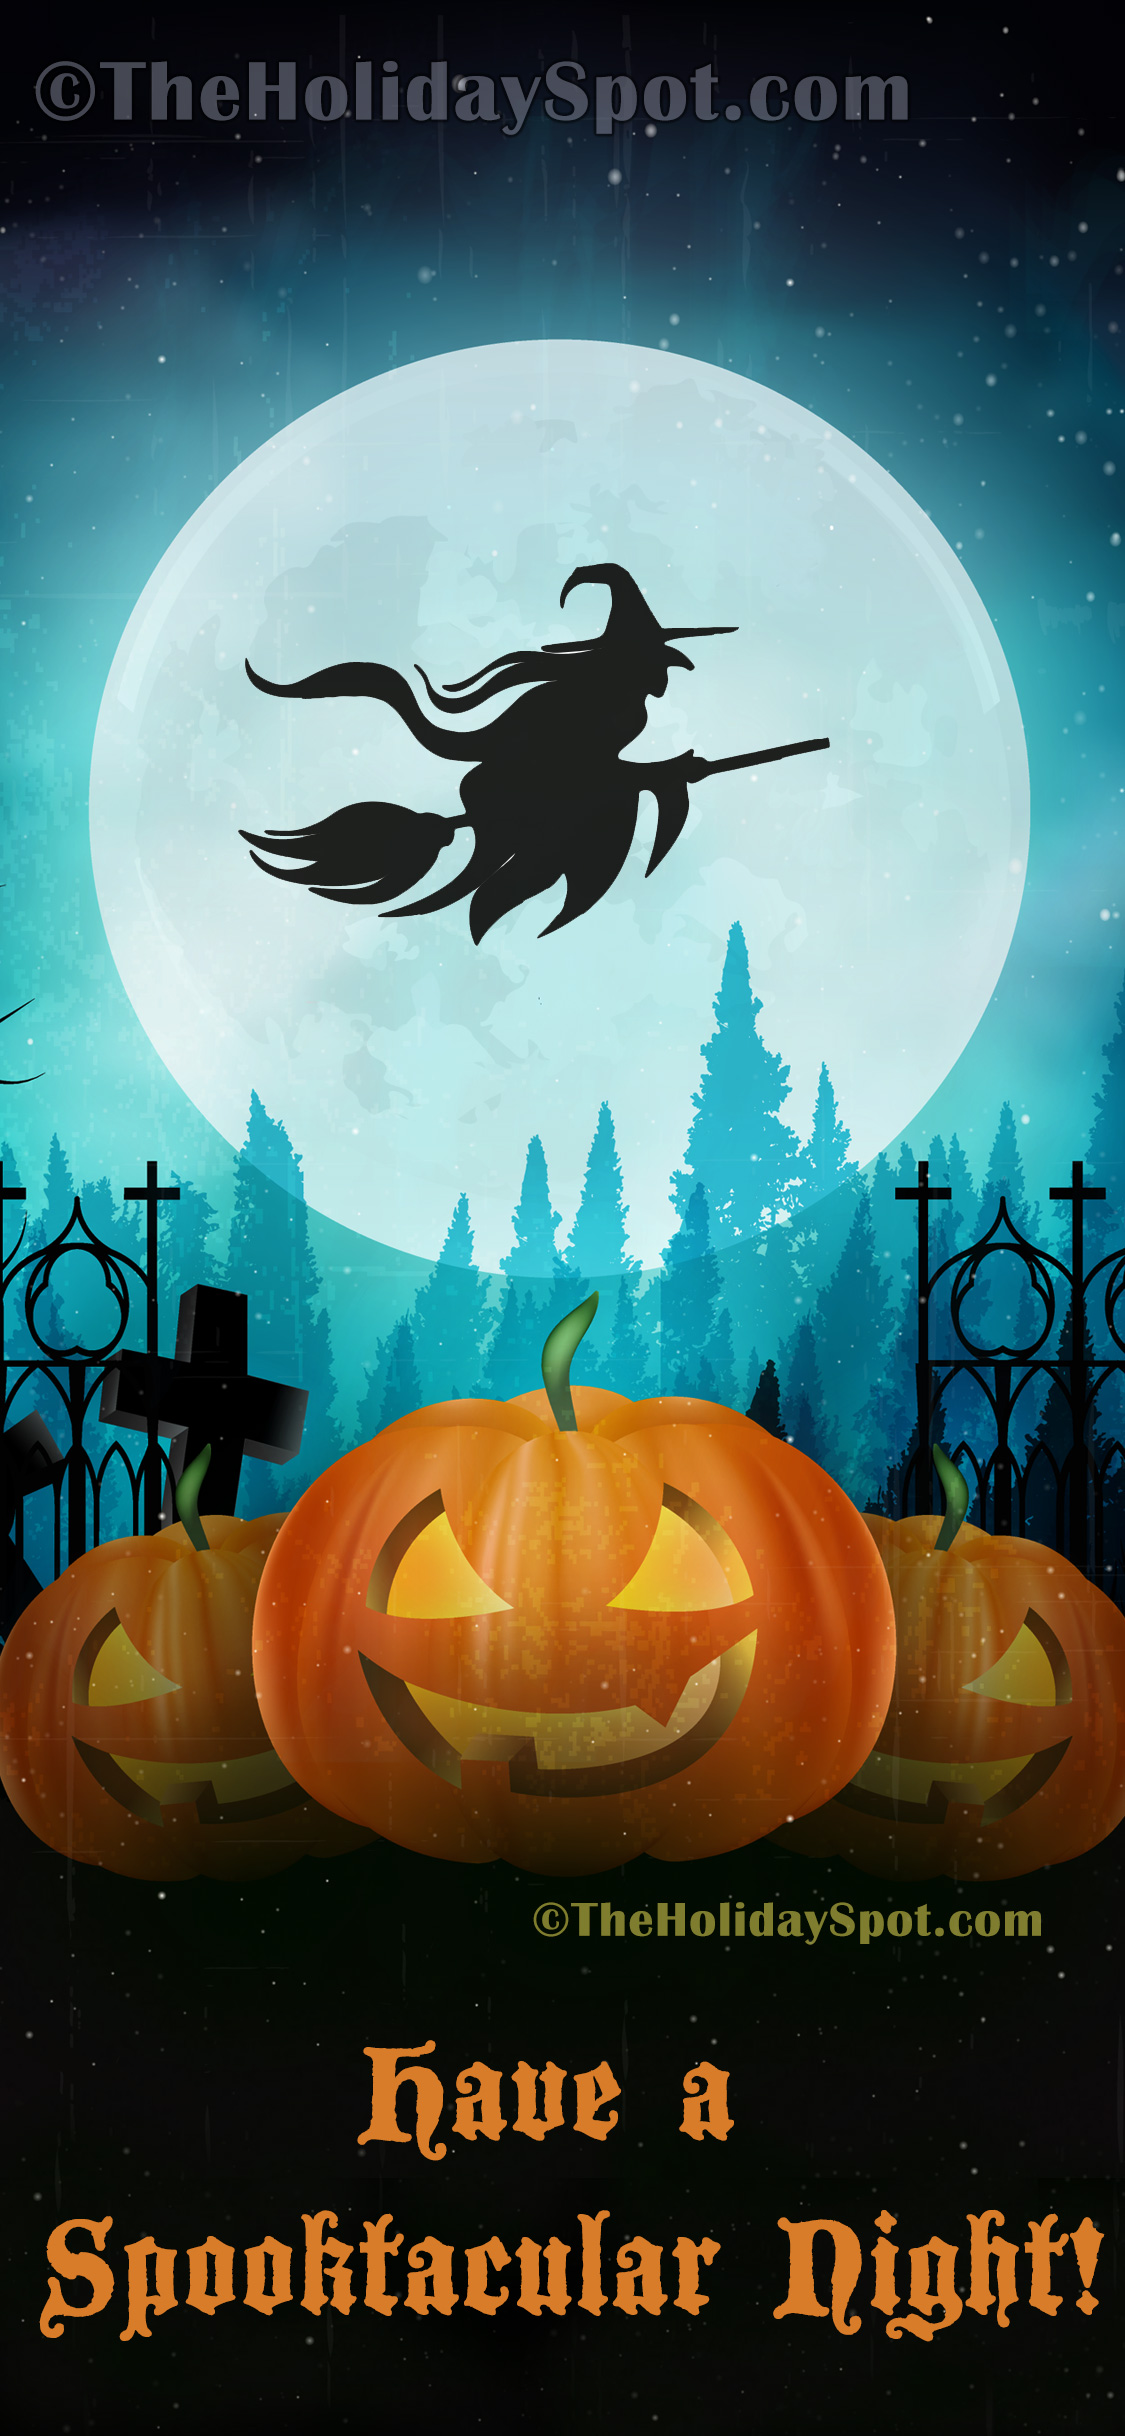 Beautiful Wallpaper Halloween Iphone 6s Plus - iphone-x-1125x2436-07  Photograph_613495.jpg